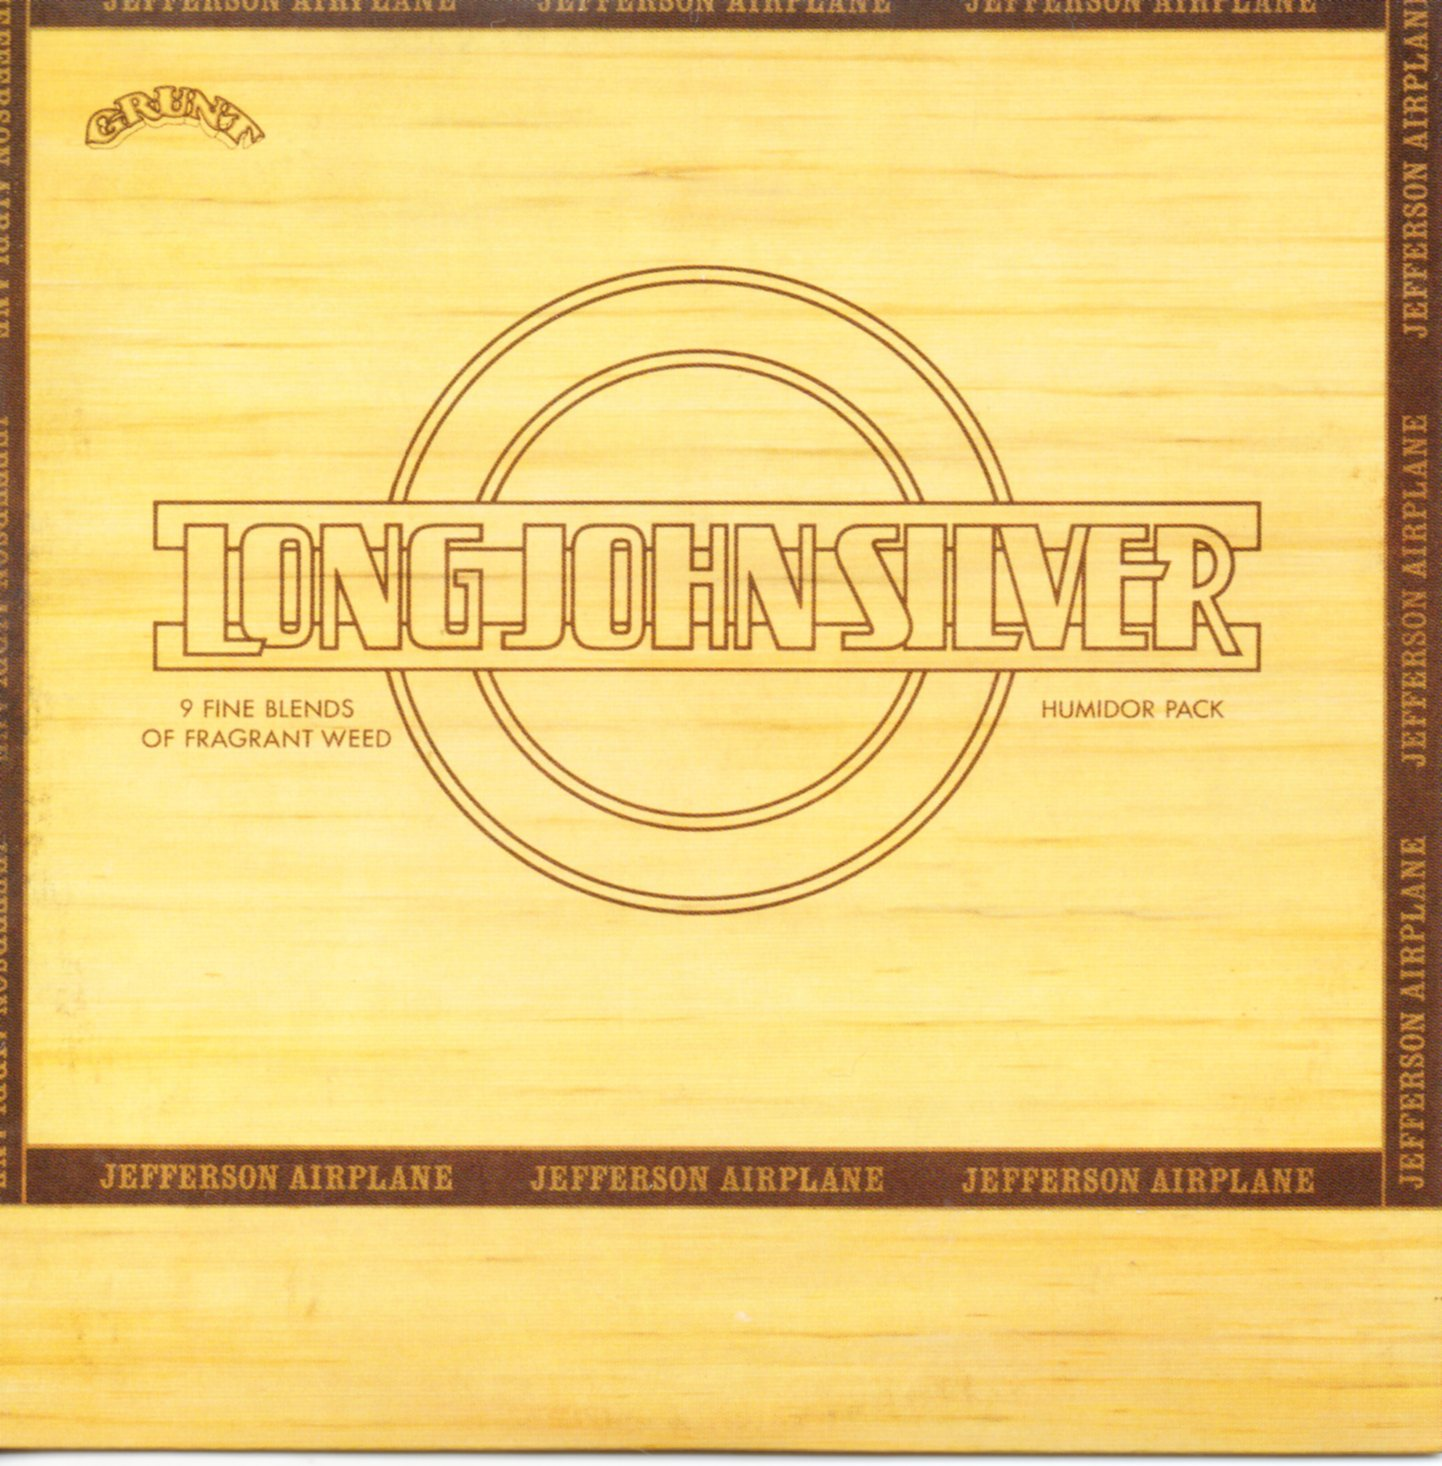 JEFFERSON AIRPLANE - Long John Silver - Mini LP - CARD SLEEVE 9-track - CD